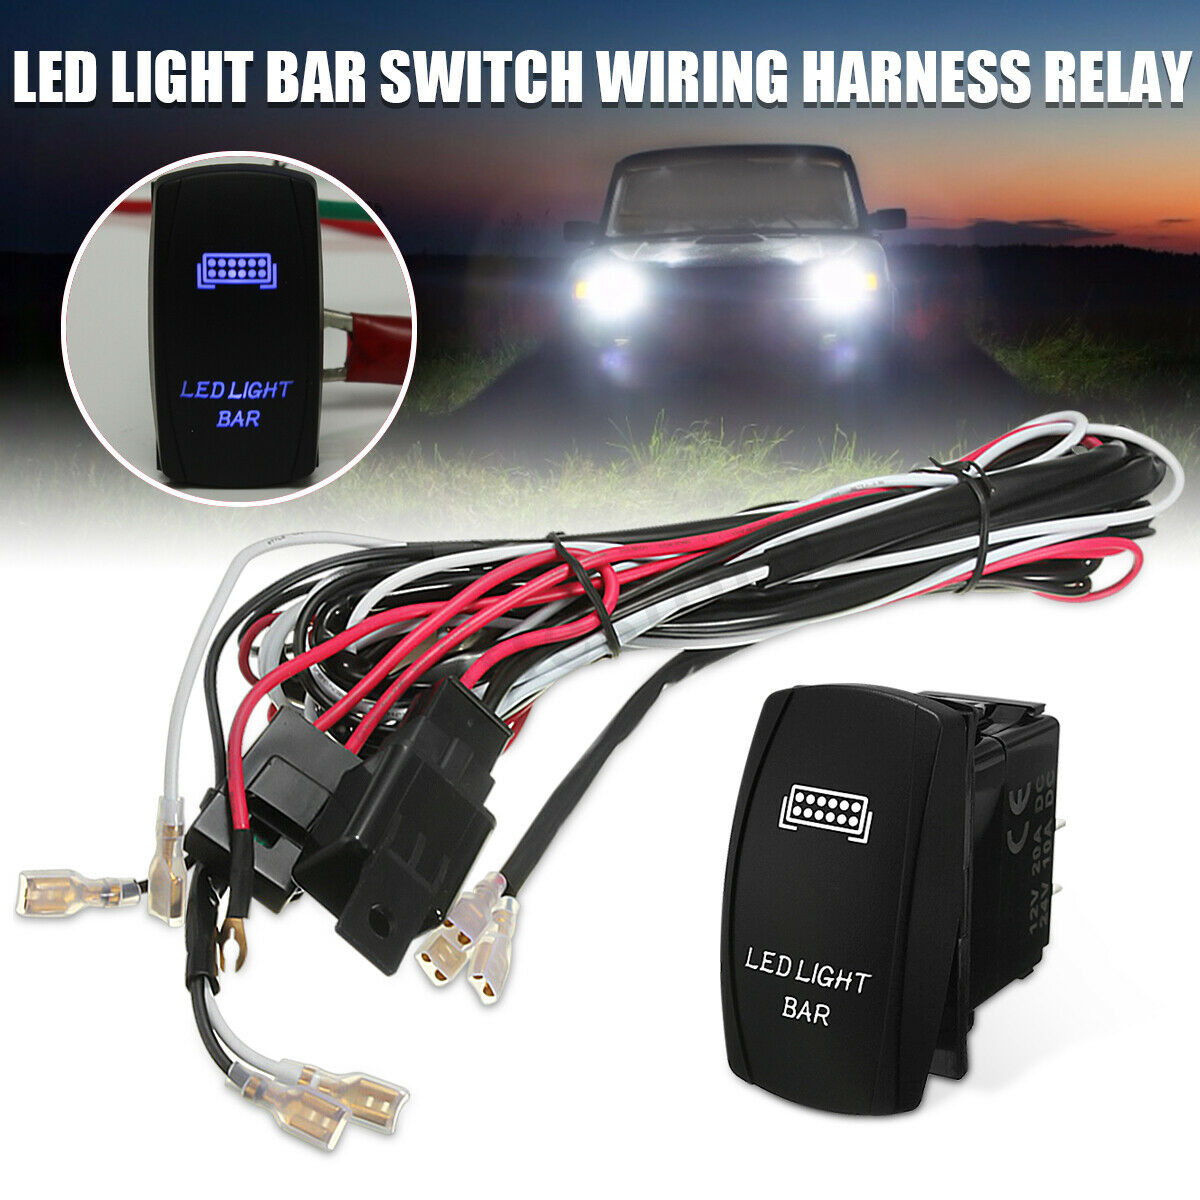 Suv Atv Wiring Harness Led Light Bar Rocker Switch On Off 40a Relay Fuse Kit 1 Of 10